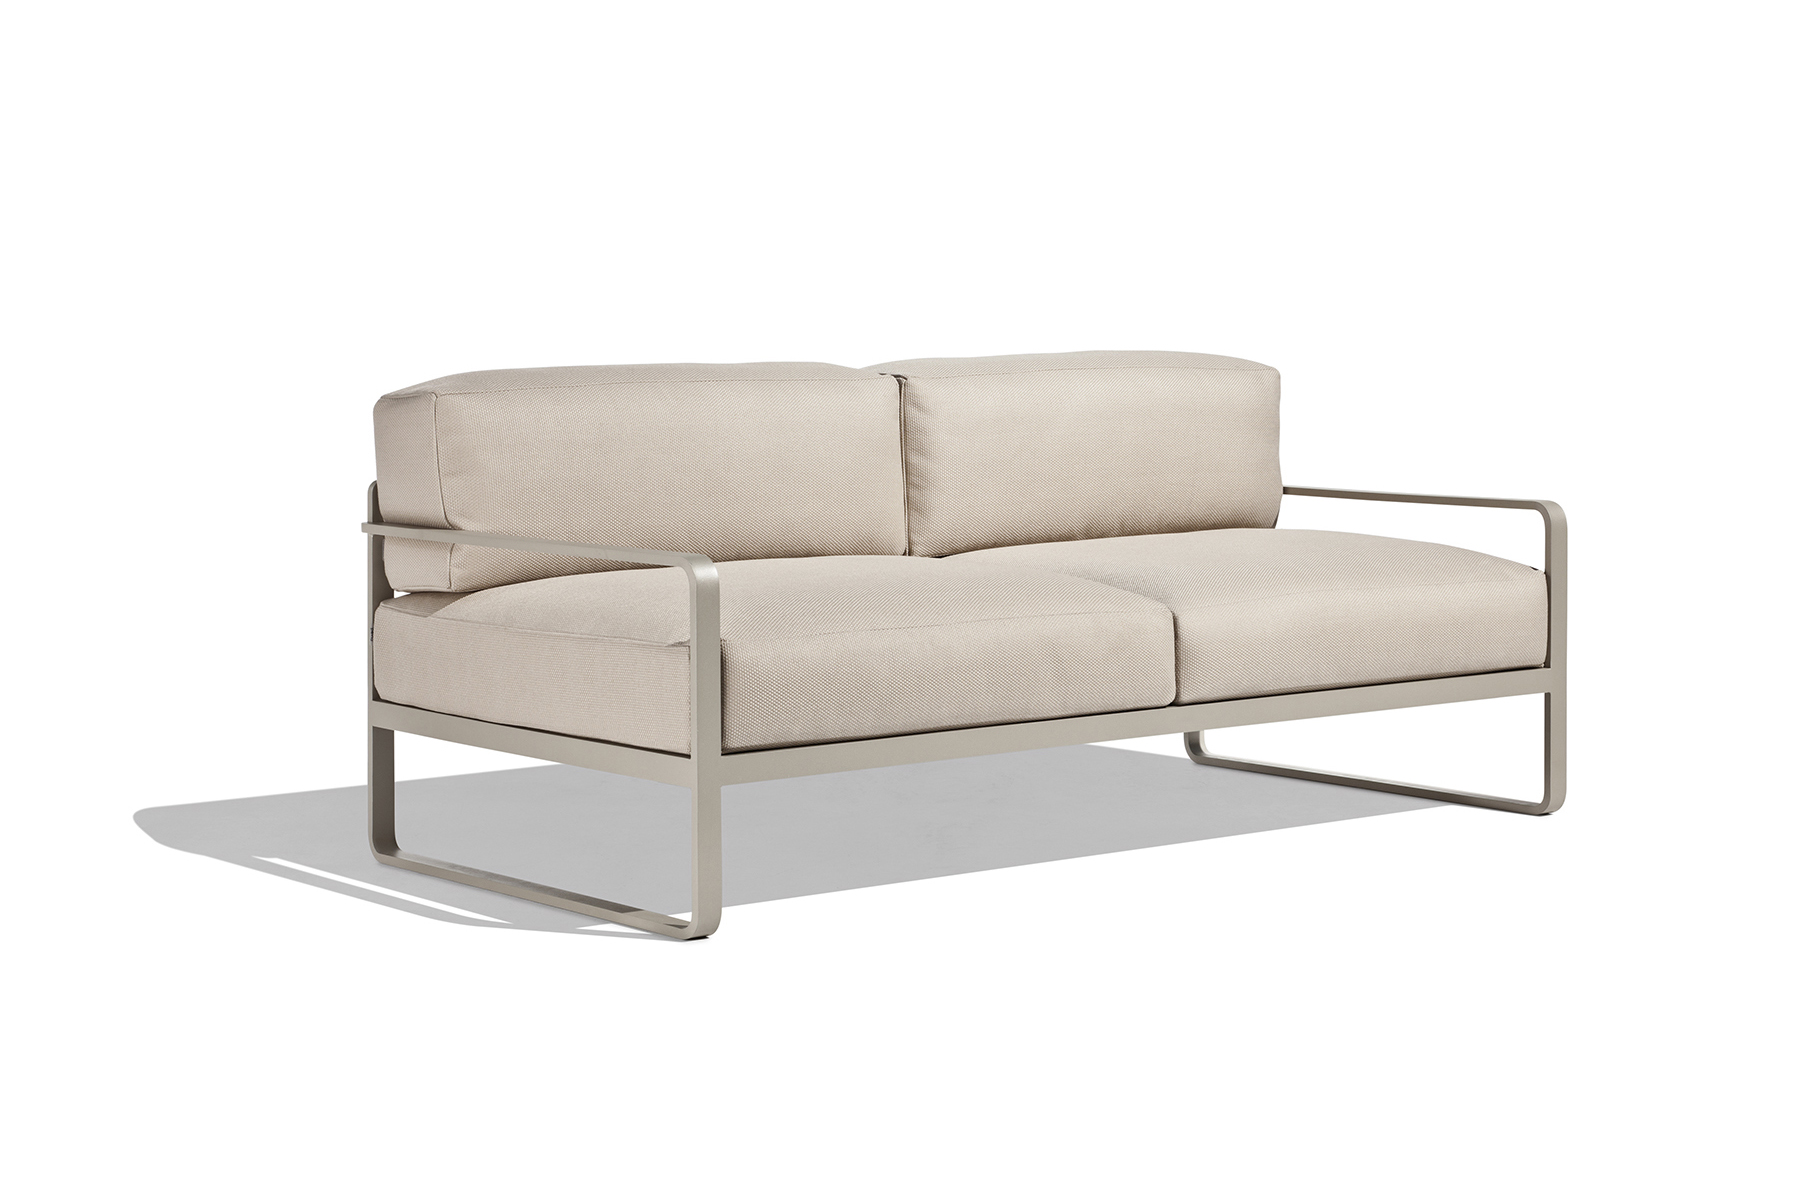 sit_2seatersofa